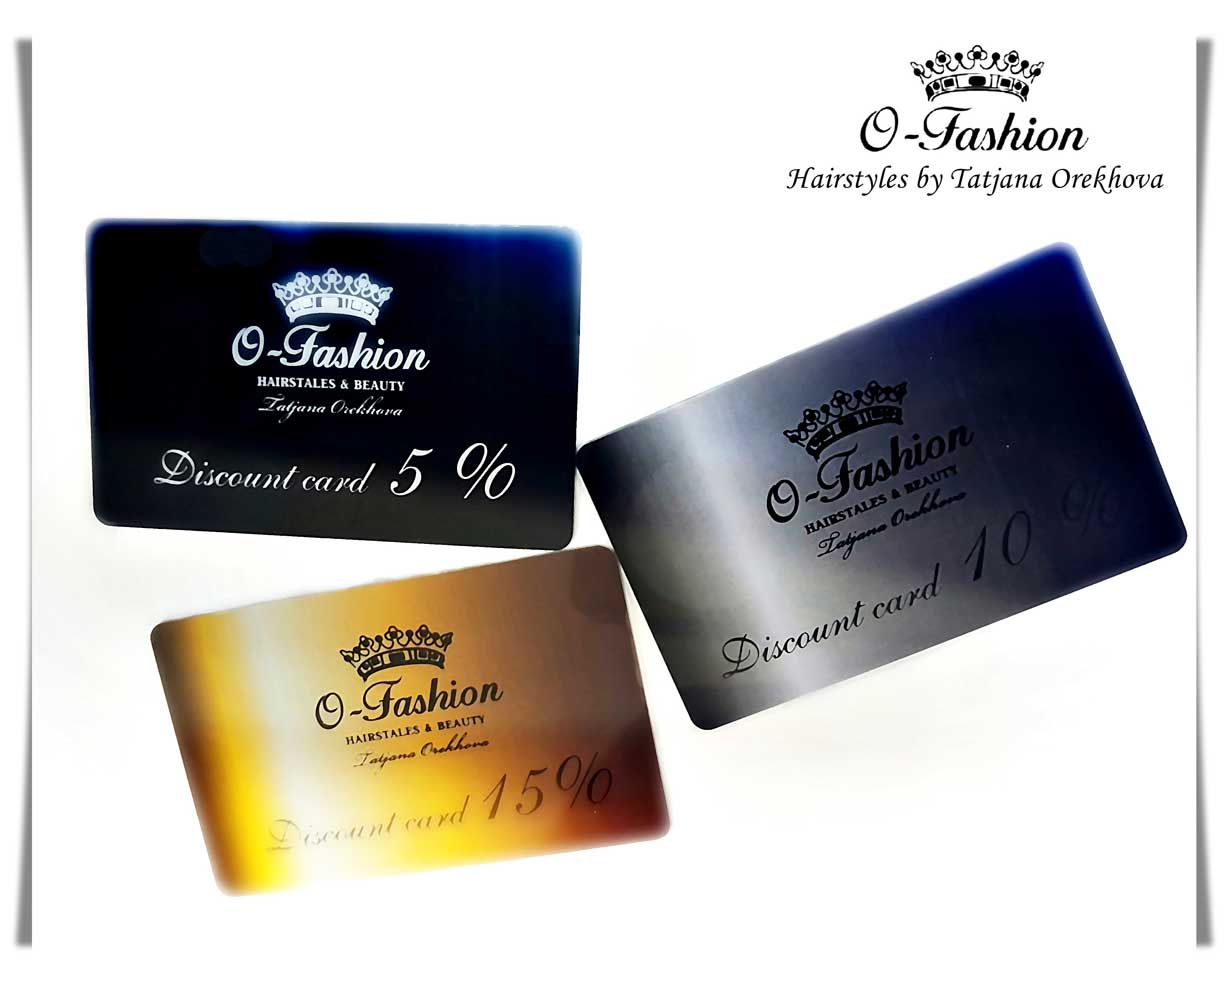 hairstyles-beauty-o-fashion-discount-card